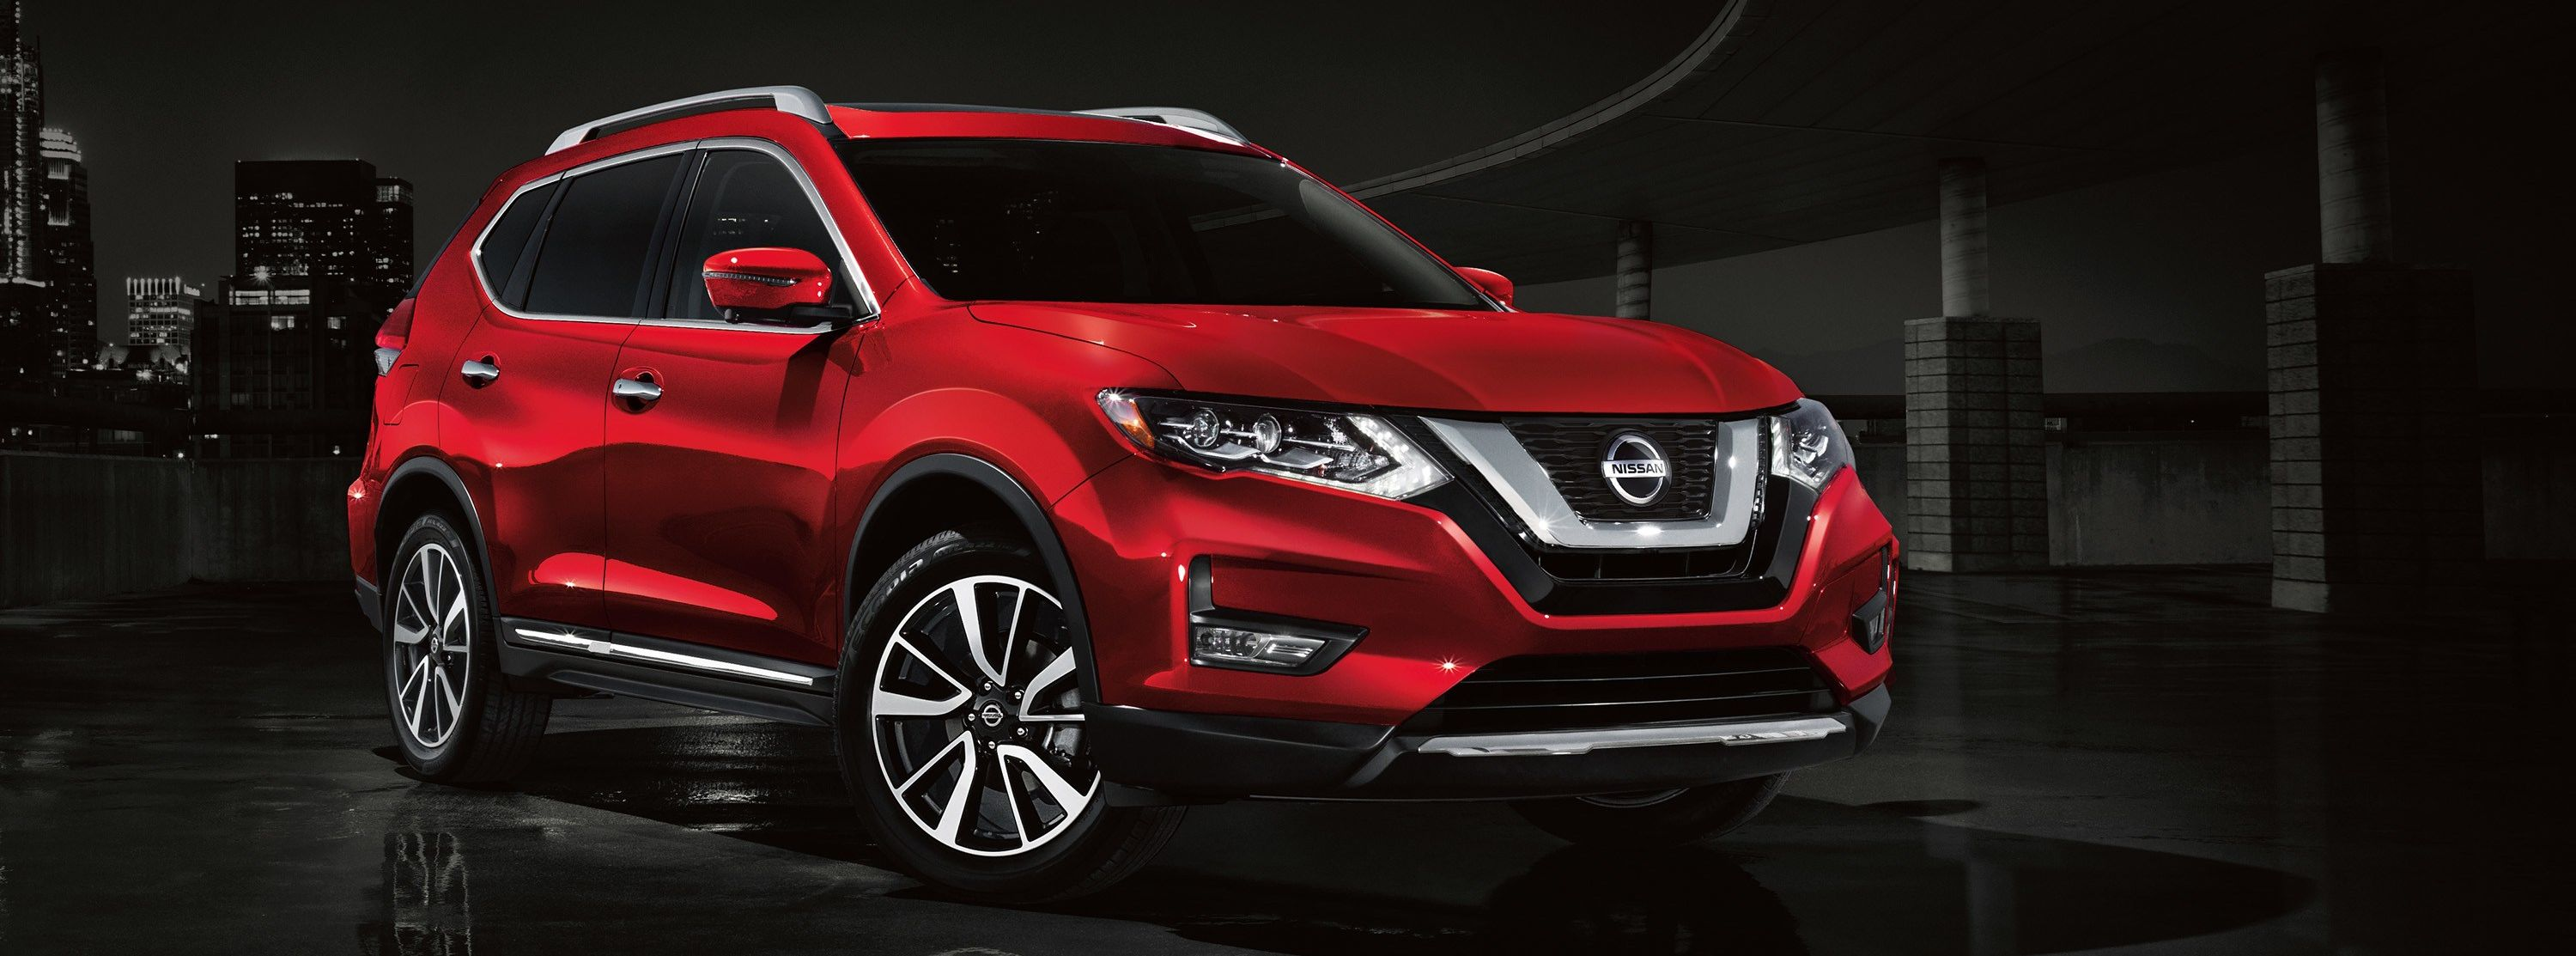 Nissan Suv For Sale >> Used Nissan Vehicles For Sale Near Columbia City In Barts Car Store